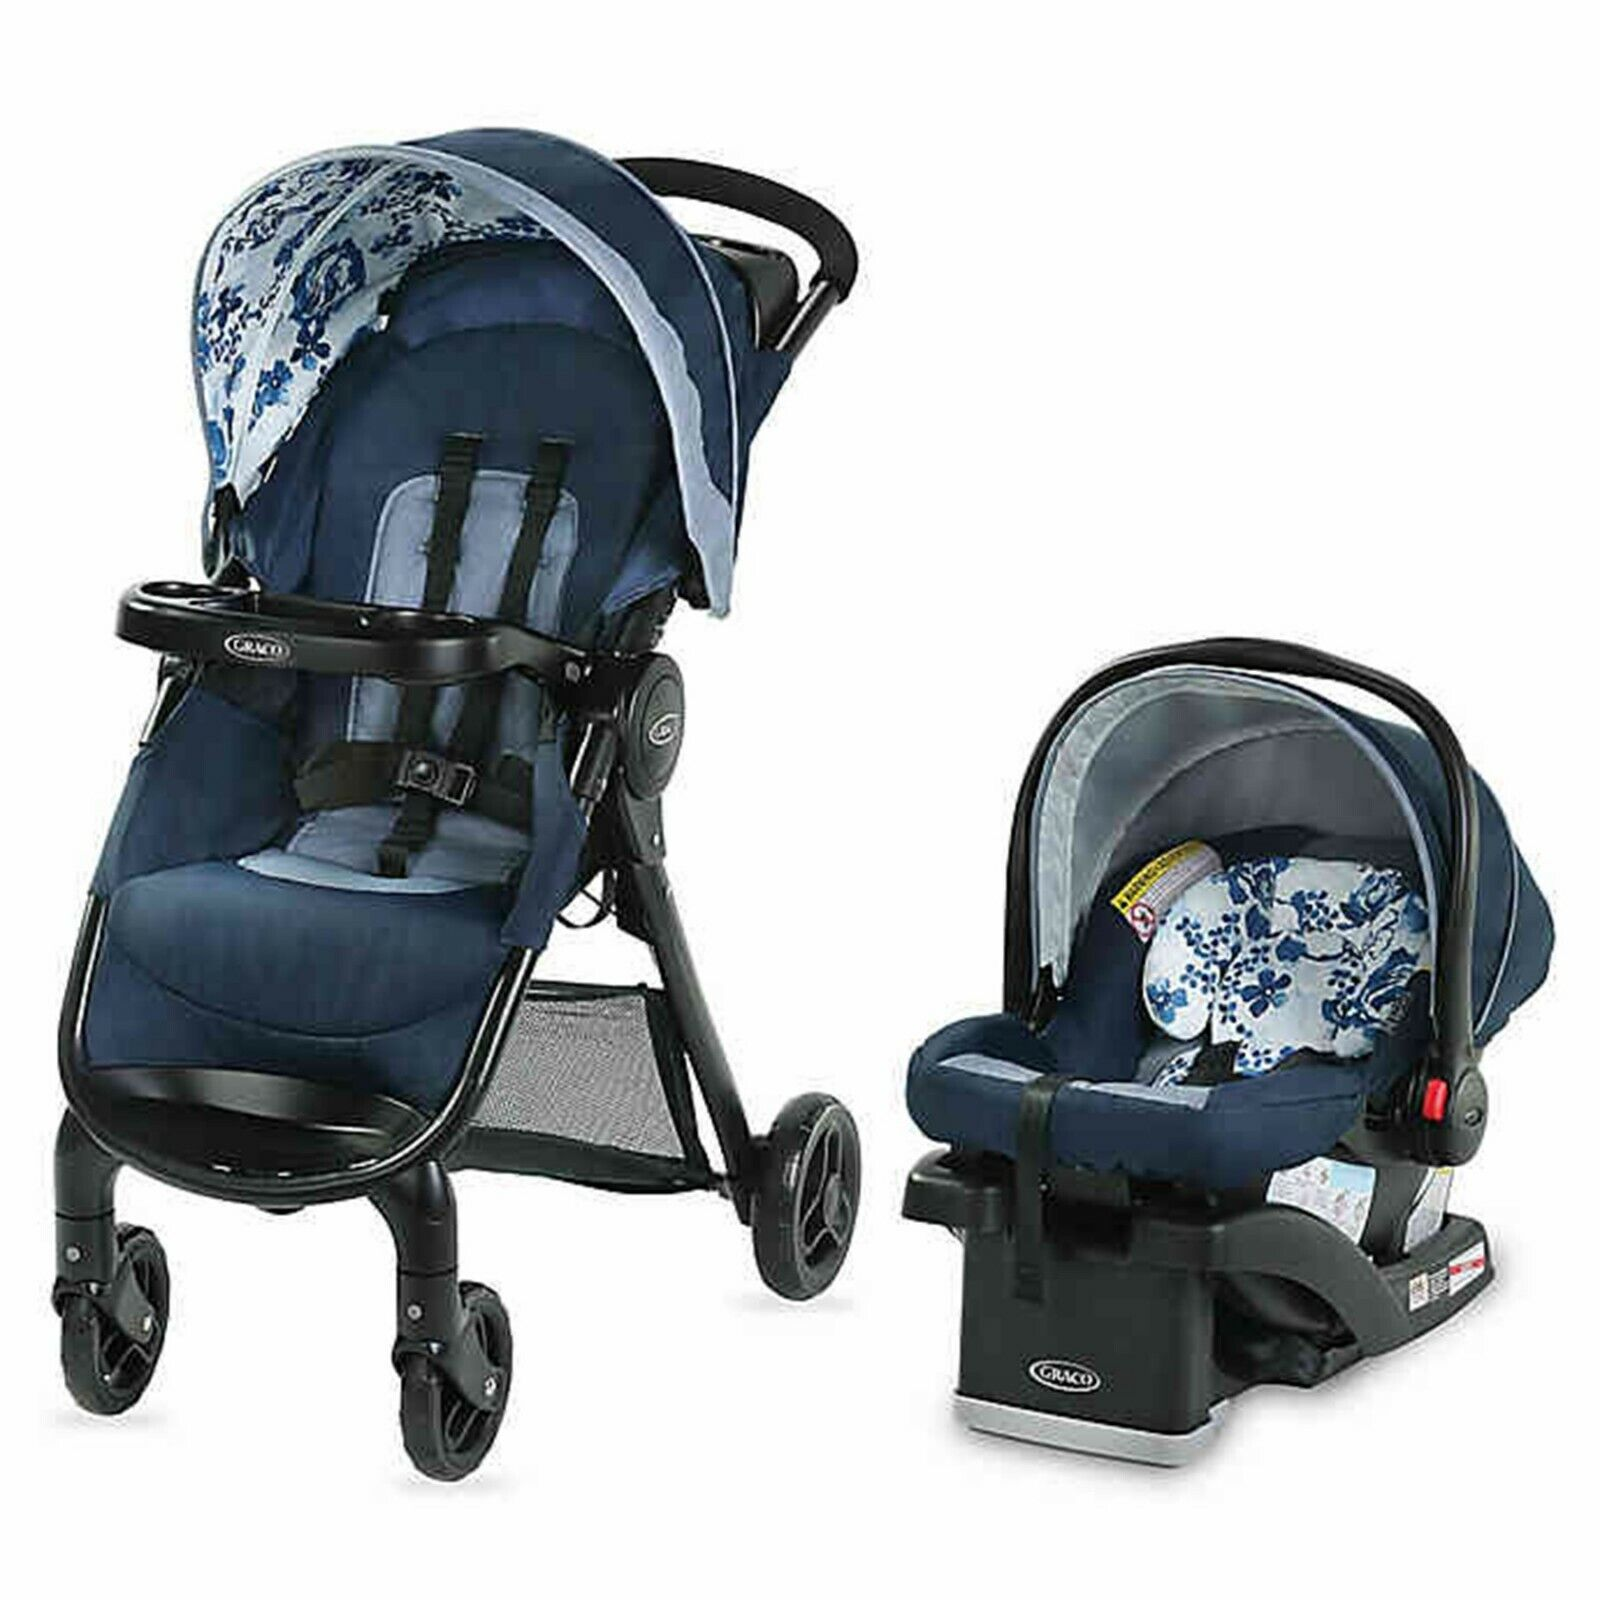 Graco Baby Stroller With Car Seat Combo Newborn Infant Trave